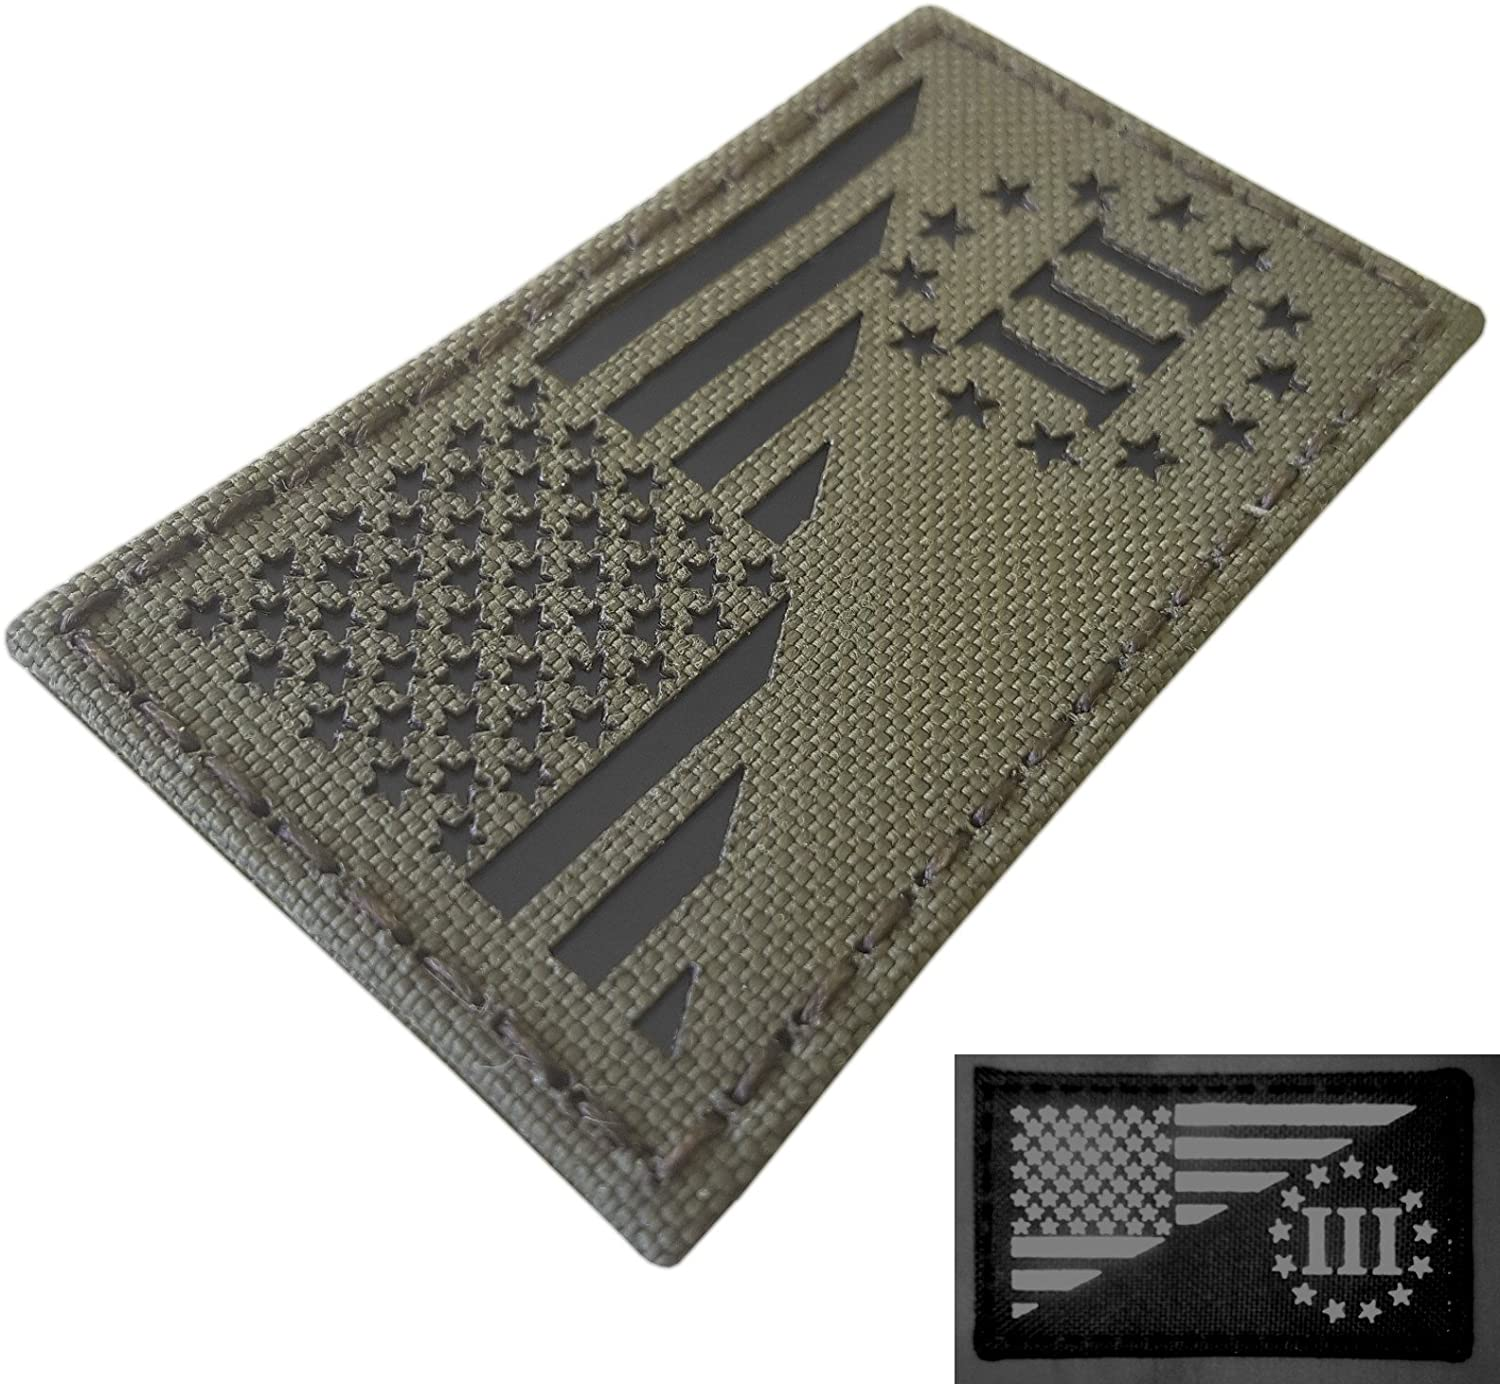 Ranger Green USA Flag Infrared Three Percenter Oathkeeper IR Tactical Morale Hook&Loop Patch